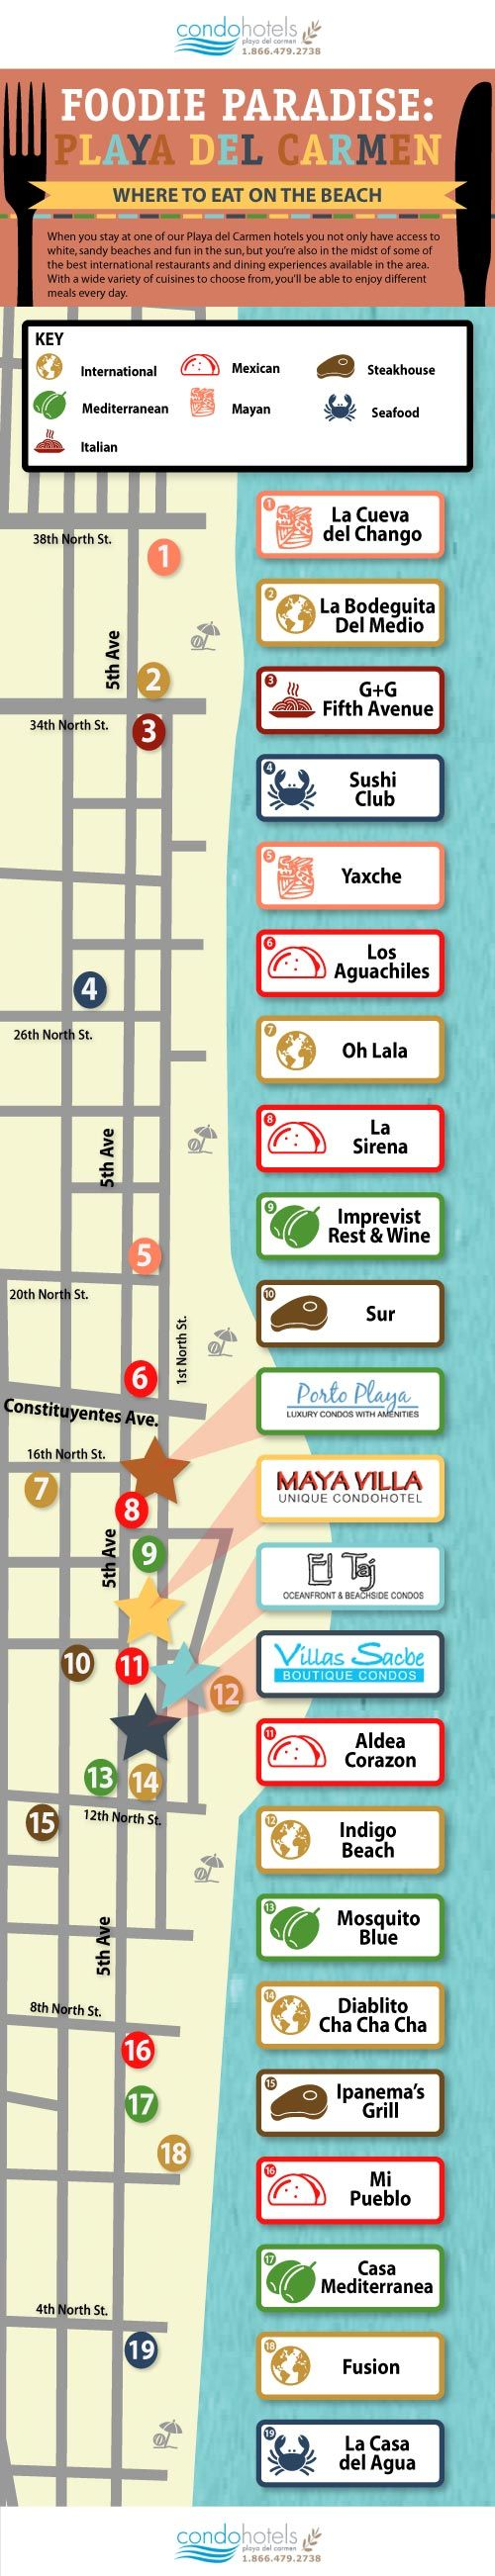 Where to Eat on the Beach When you stay at one of our Playa del Carmen hotels you not only have access to white, sandy beaches and fun in the sun, but you're also in the midst of some of the best i...